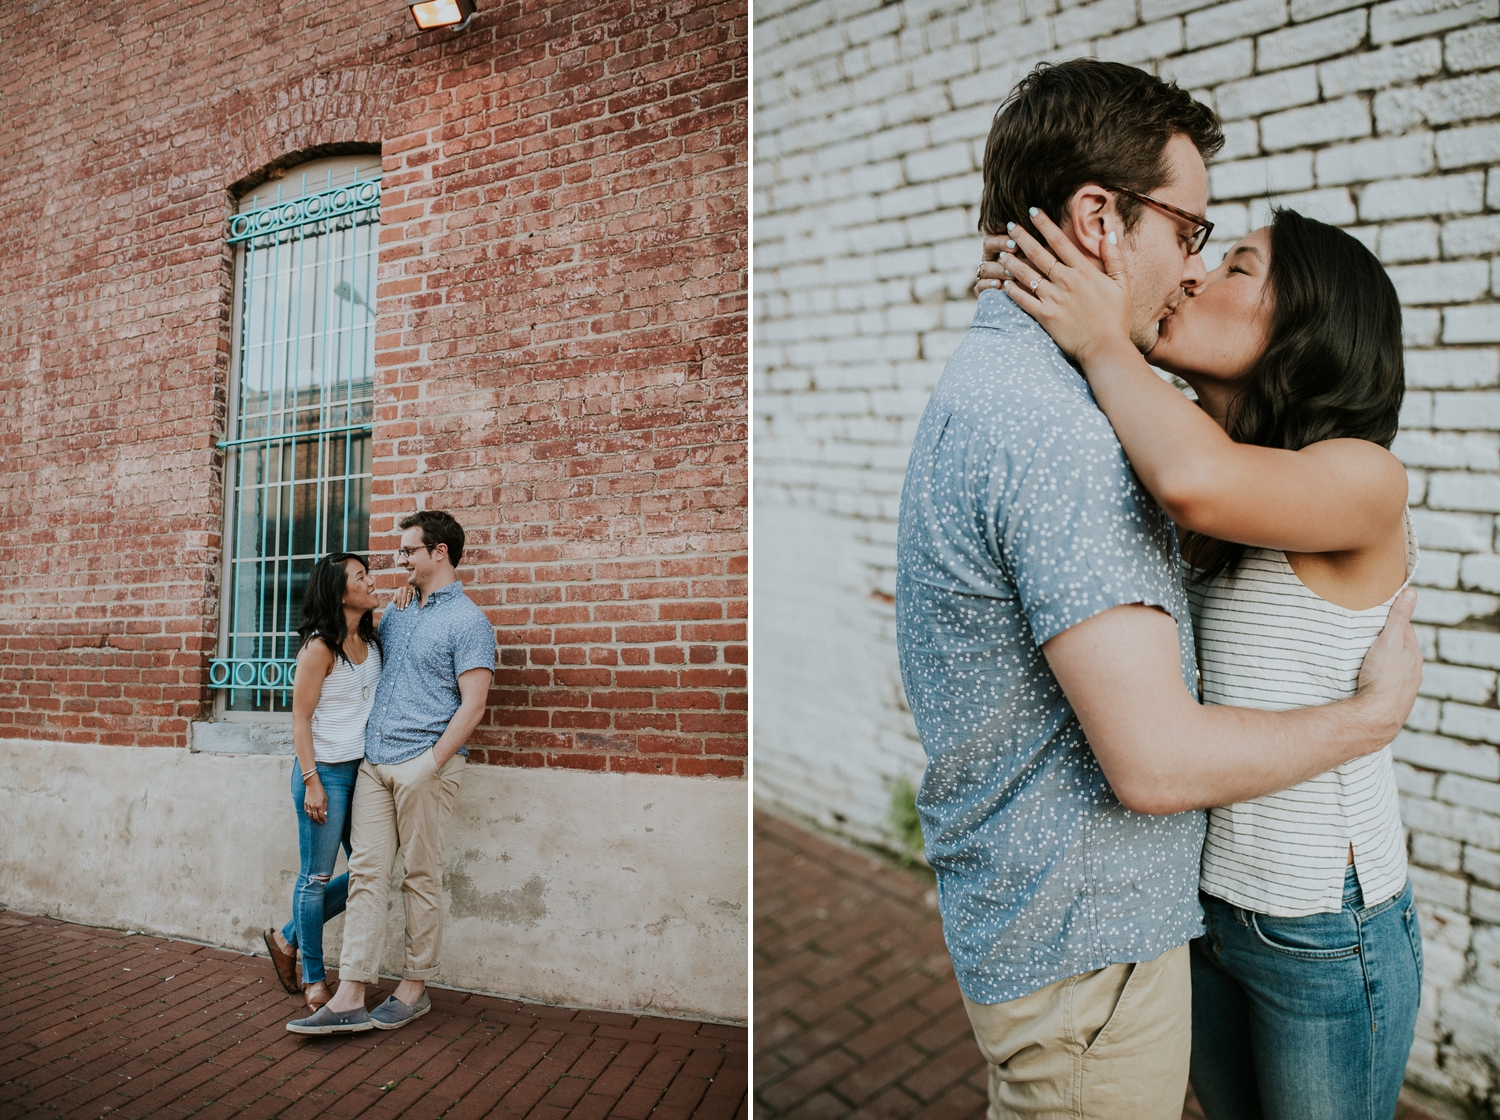 washington_dc_blagden_alley_engagement_photography 8.jpg